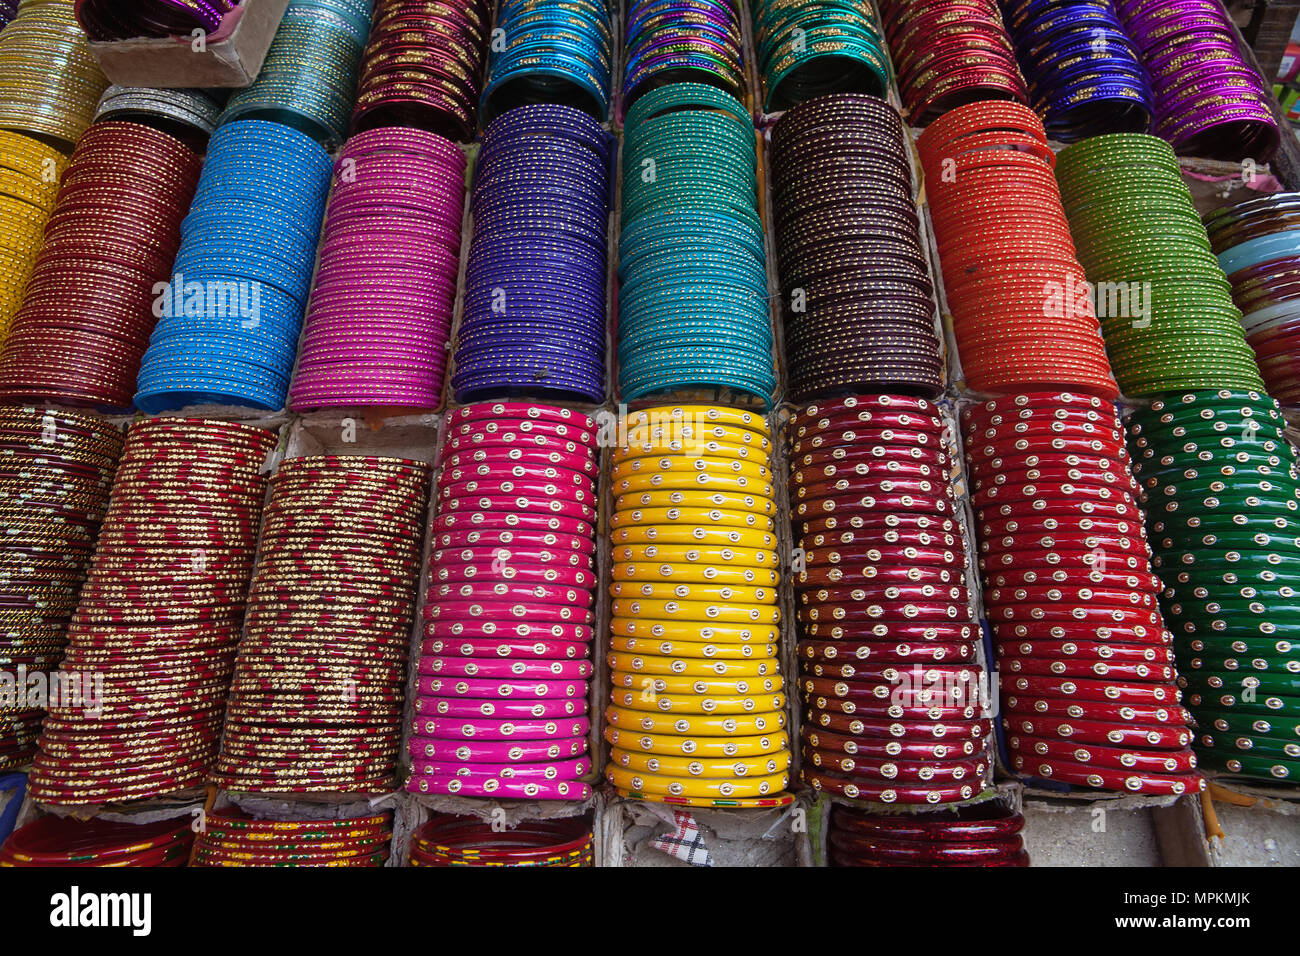 India, West Bengal, Kolkata, Bangles on display in a shop in the Bara Bazar district. Stock Photo